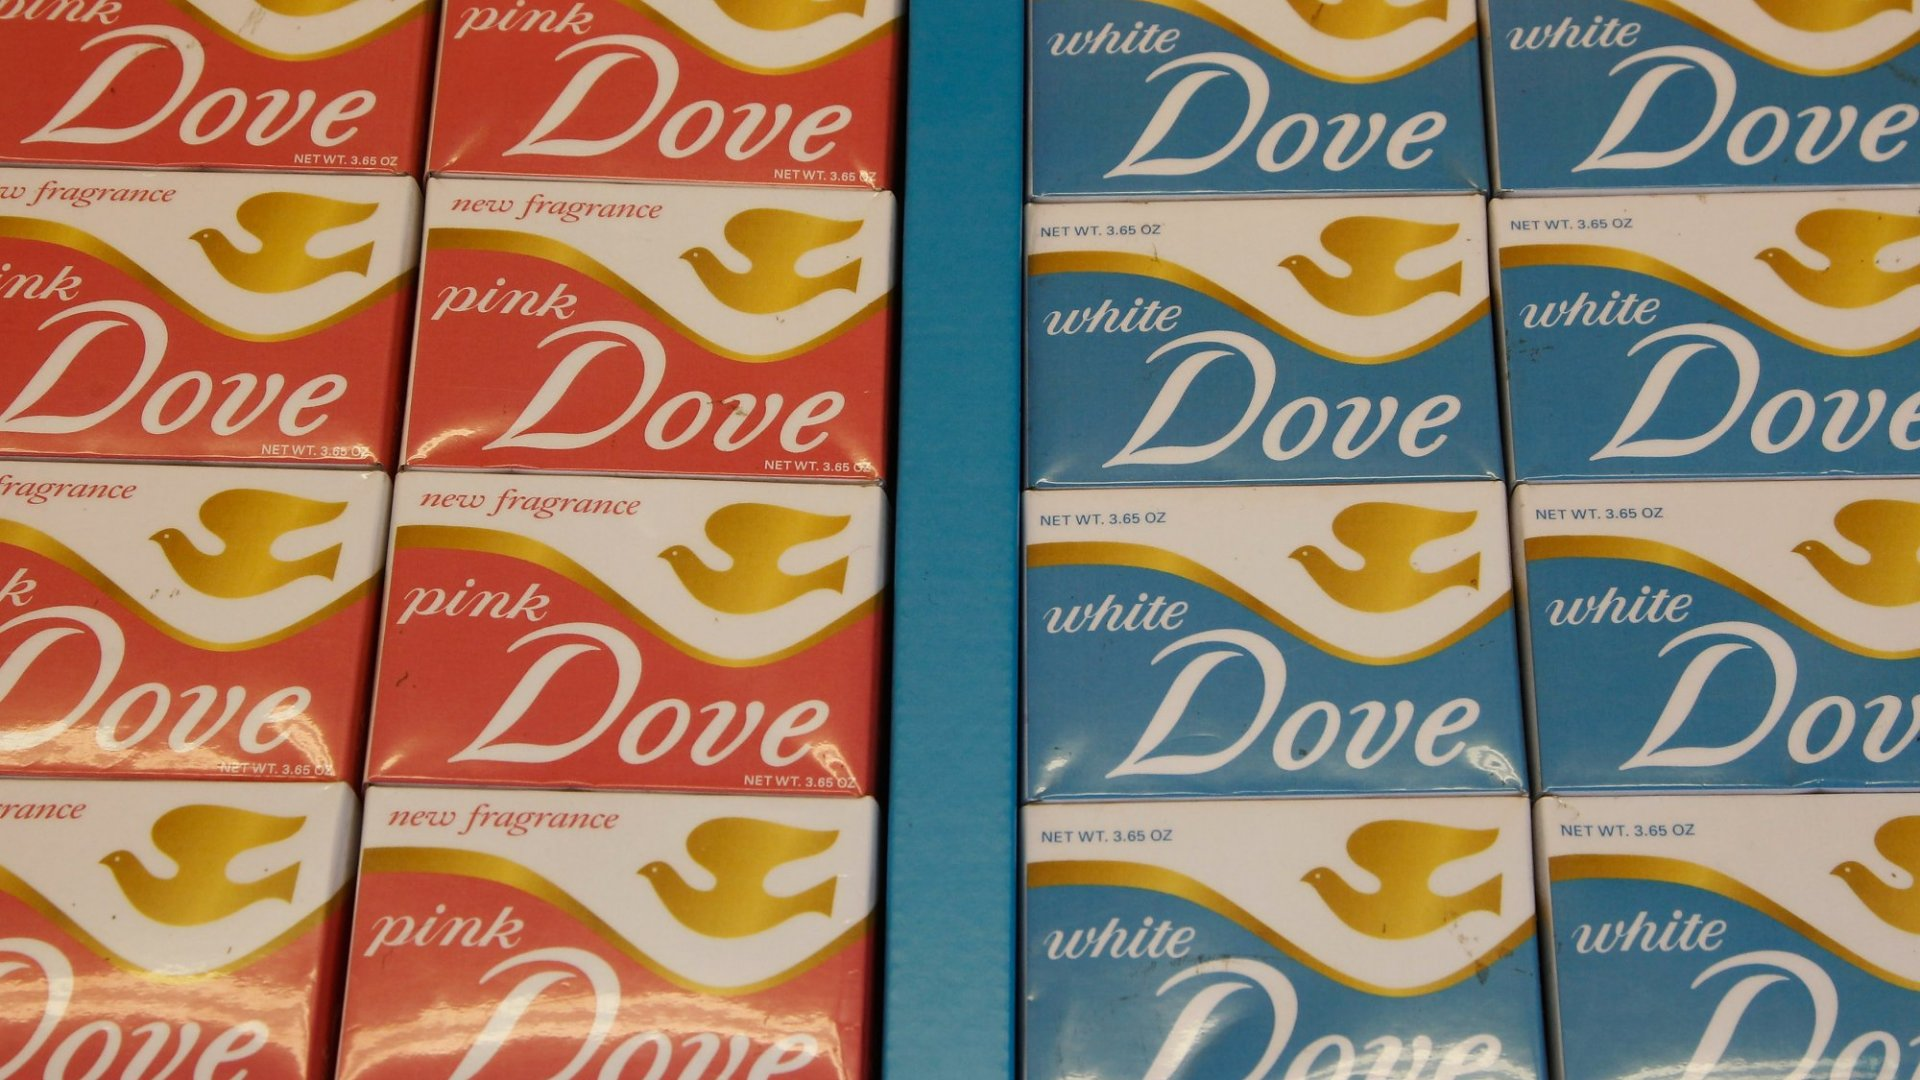 What Was Unilever Thinking?